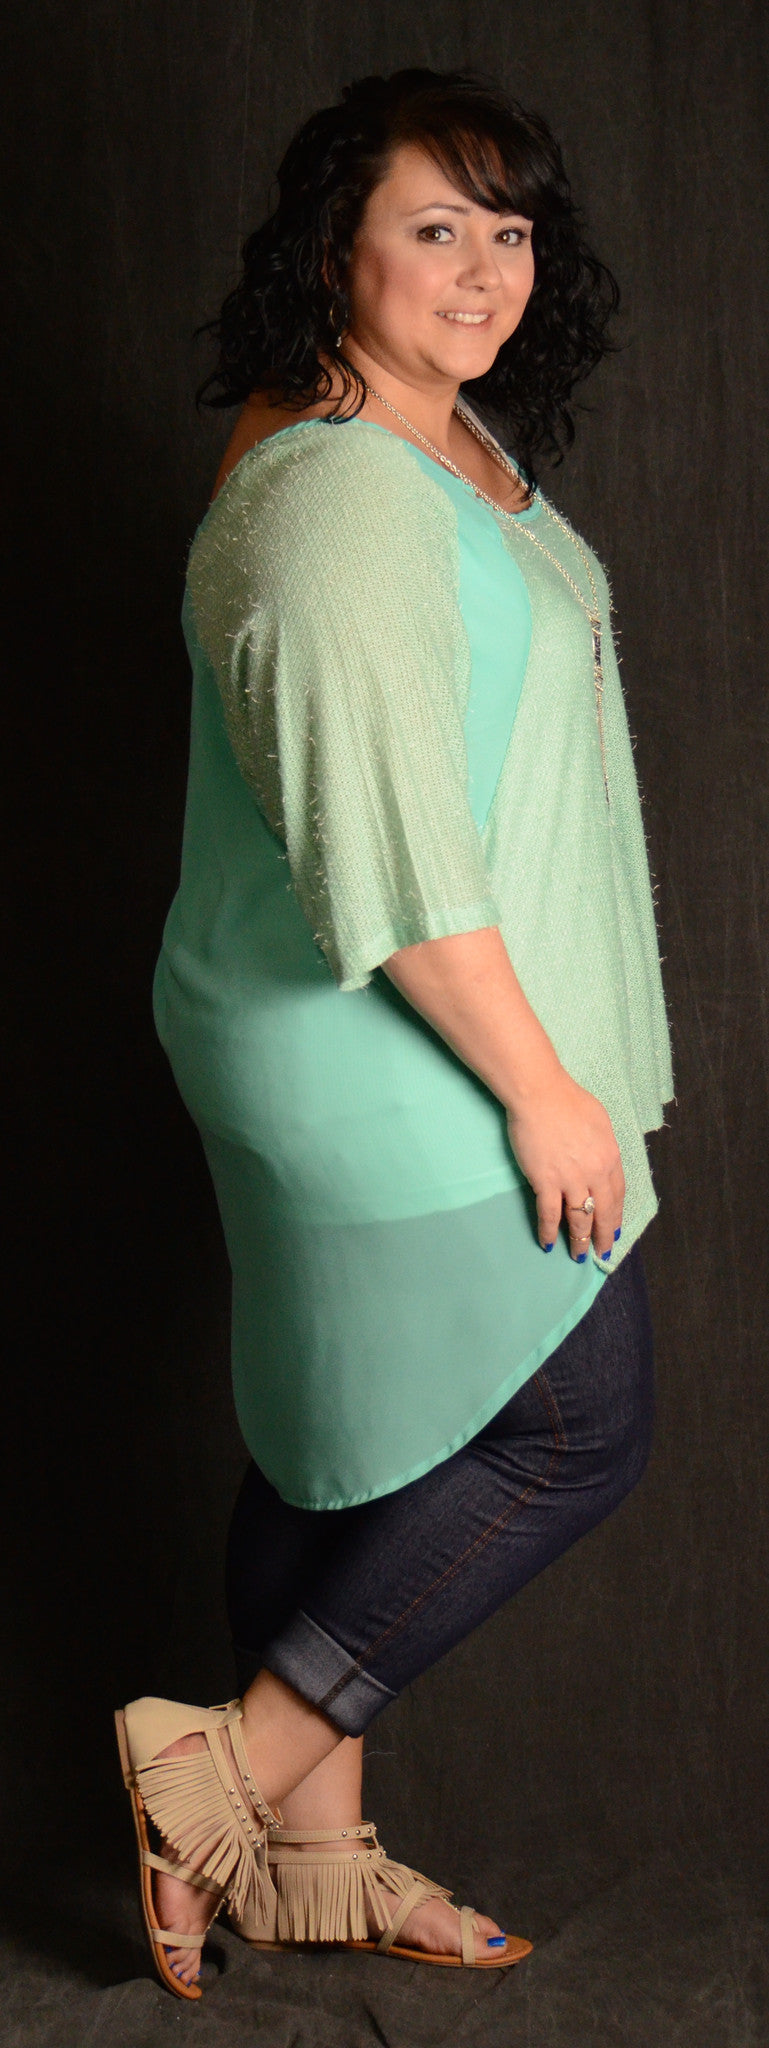 Sky Blue Sheer Back Top - www.mycurvystore.com - Curvy Boutique - Plus Size